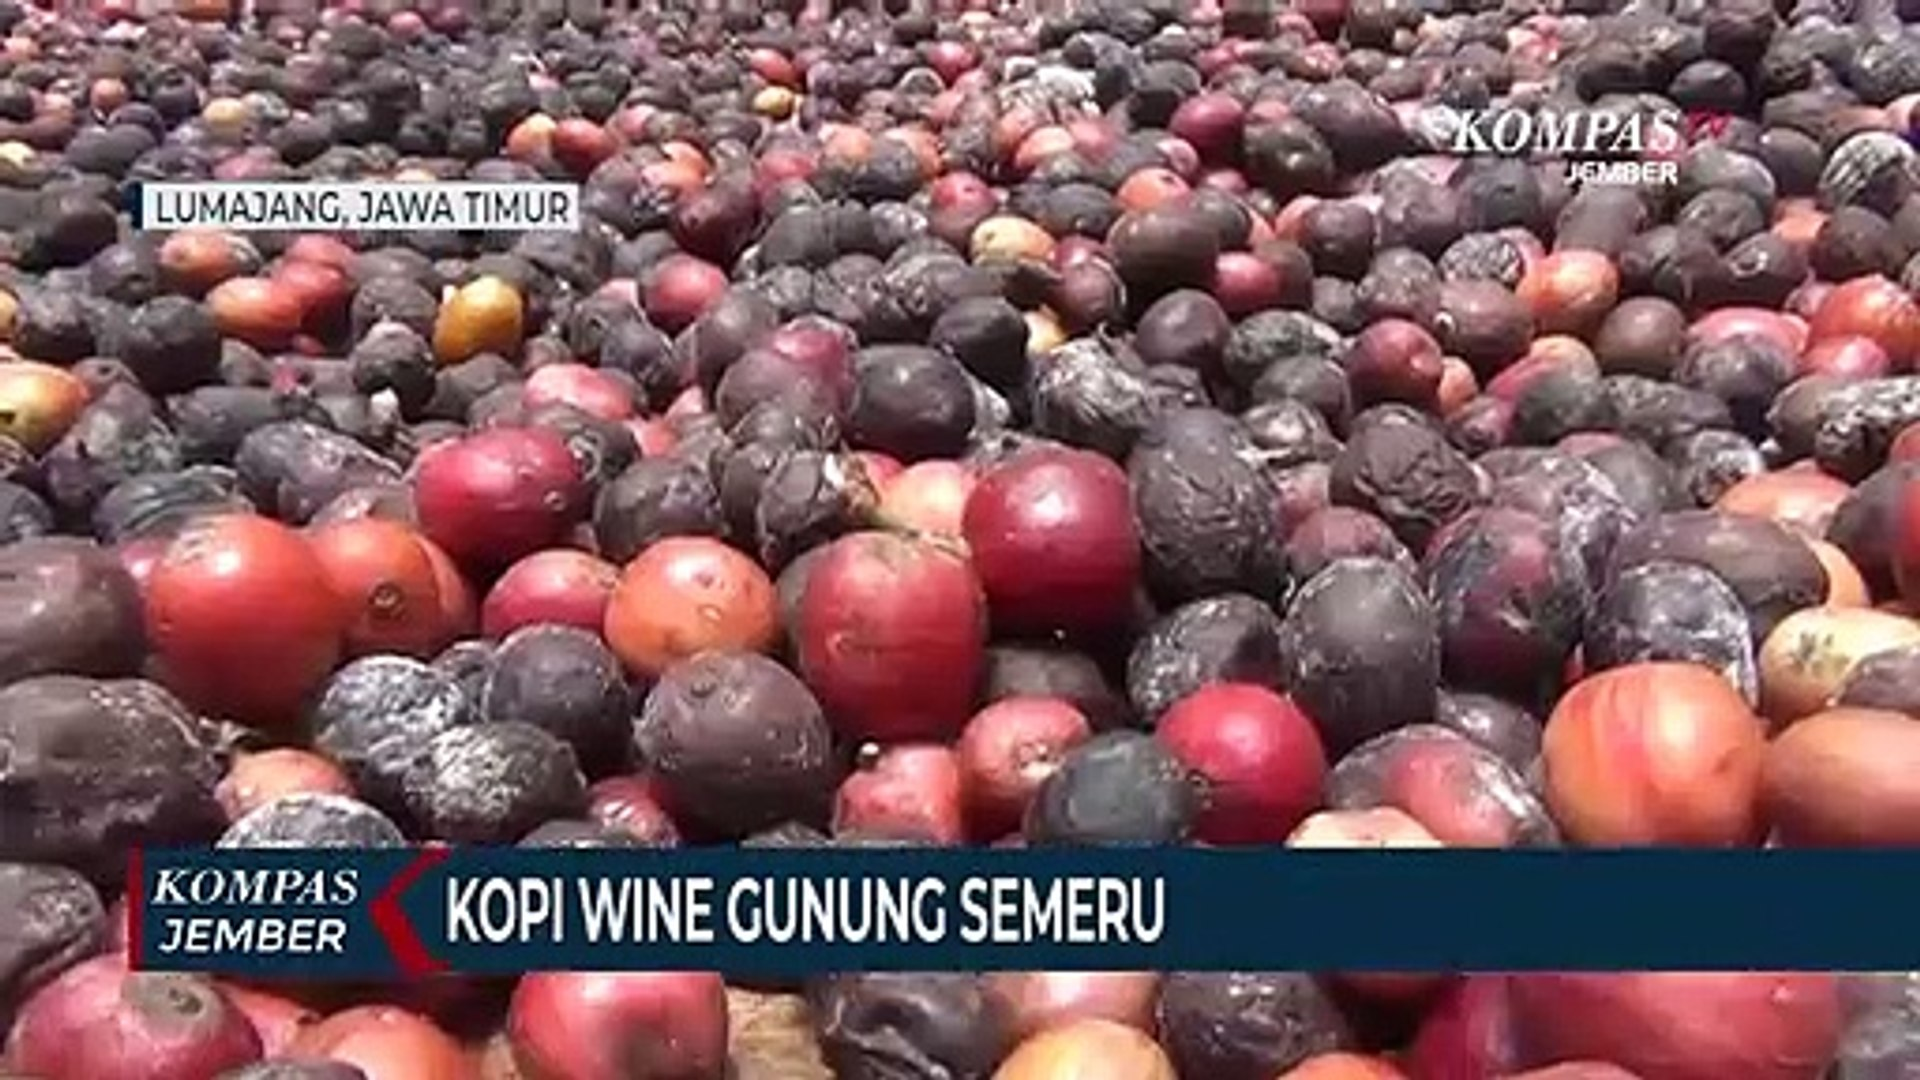 Cita Rasa Khas Kopi Wine Gunung Semeru Video Dailymotion